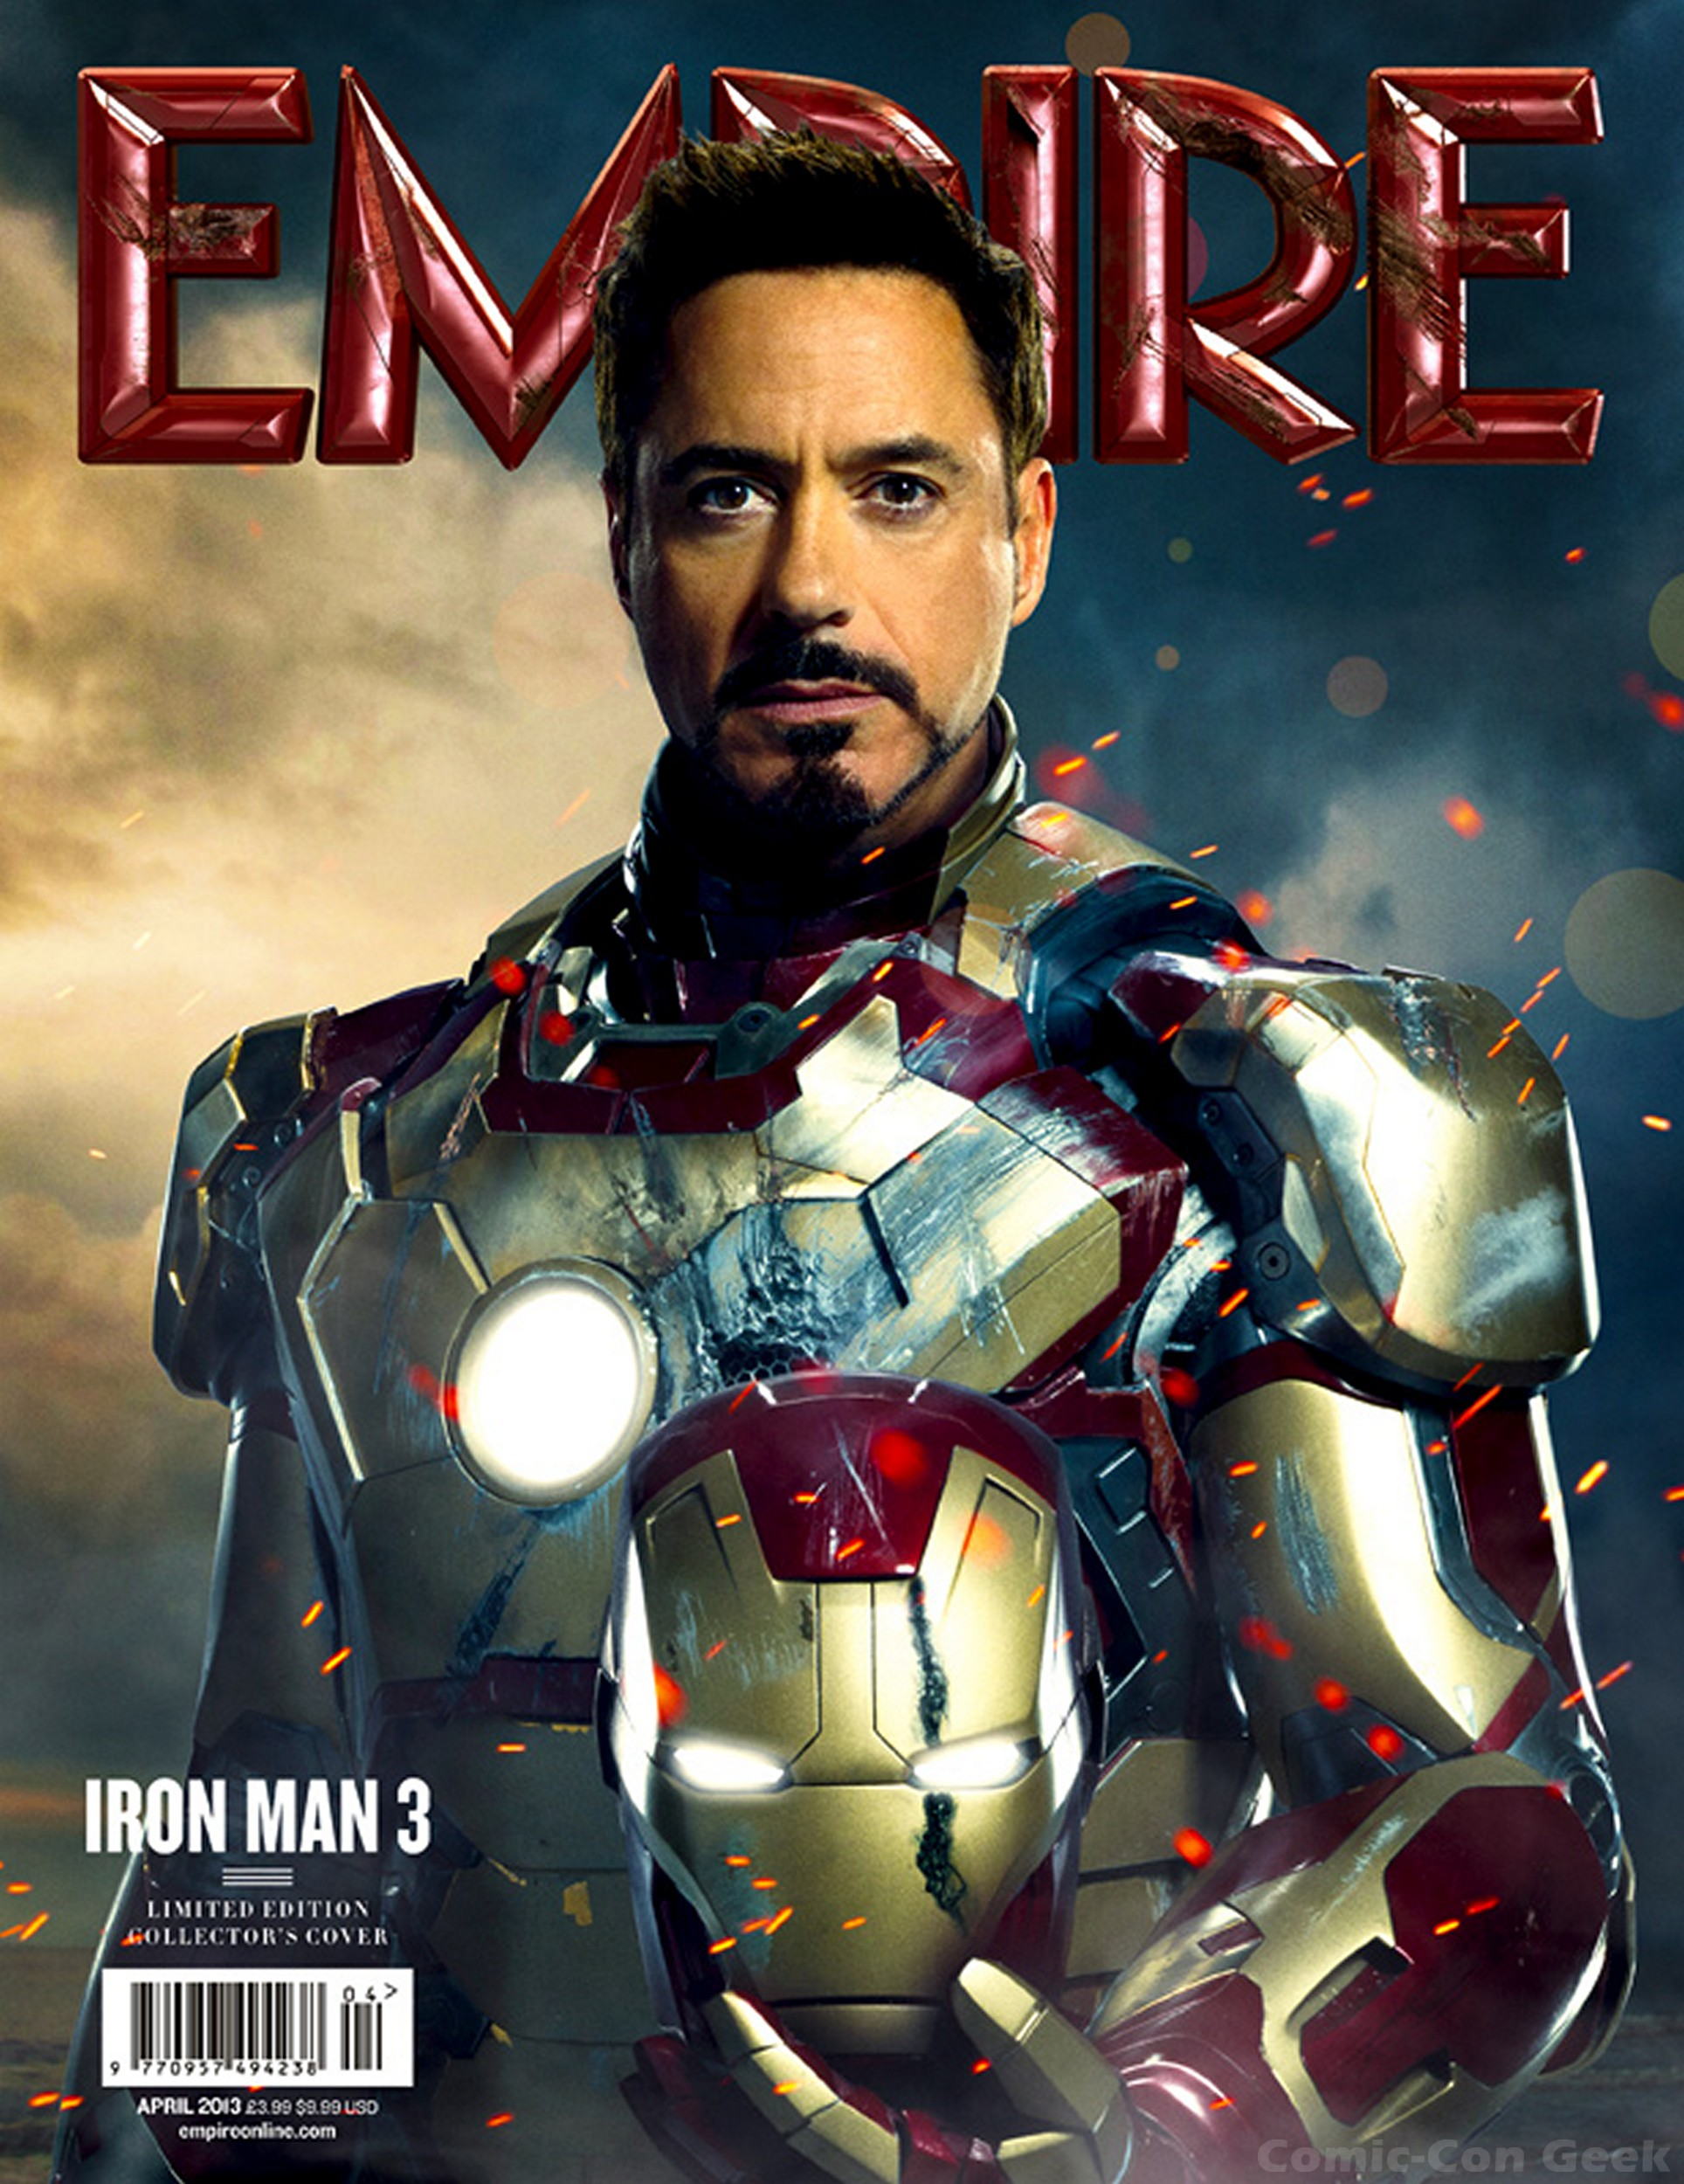 New IRON MAN 3 Posters and Empire Magazine Covers | Comic ...